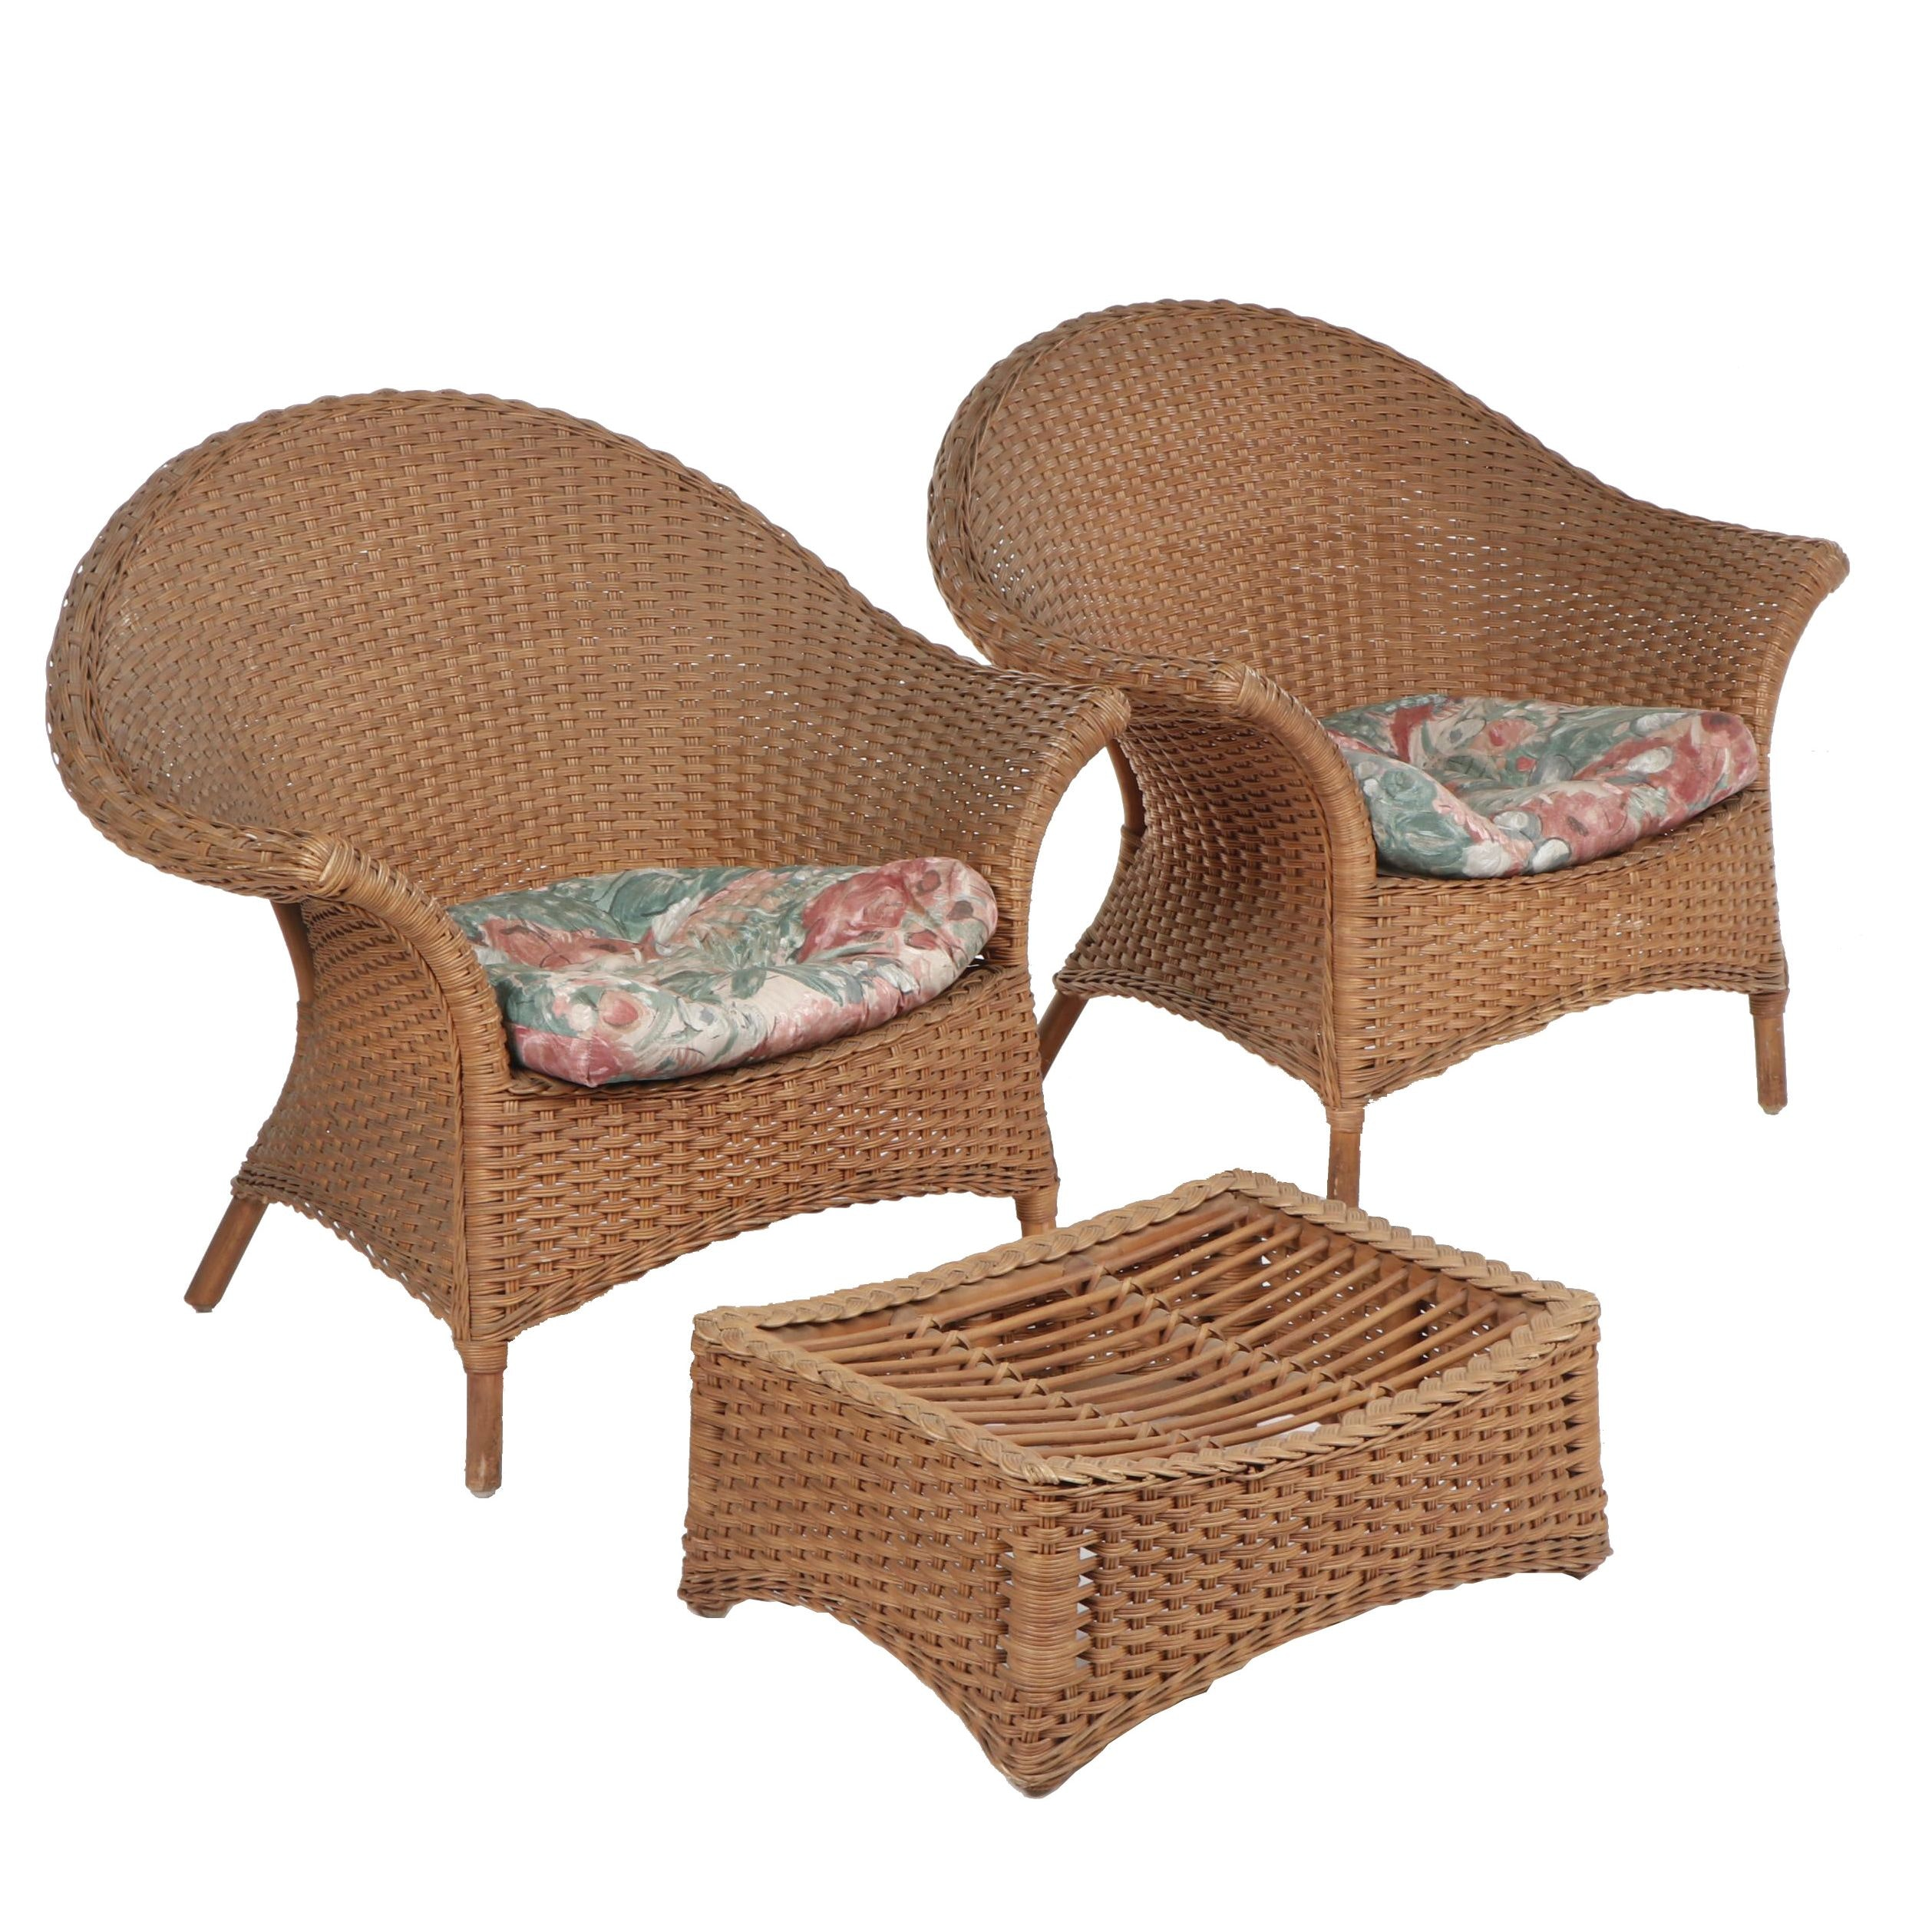 Pair of Woven Wicker Patio Chairs with Ottoman, Late 20th Century